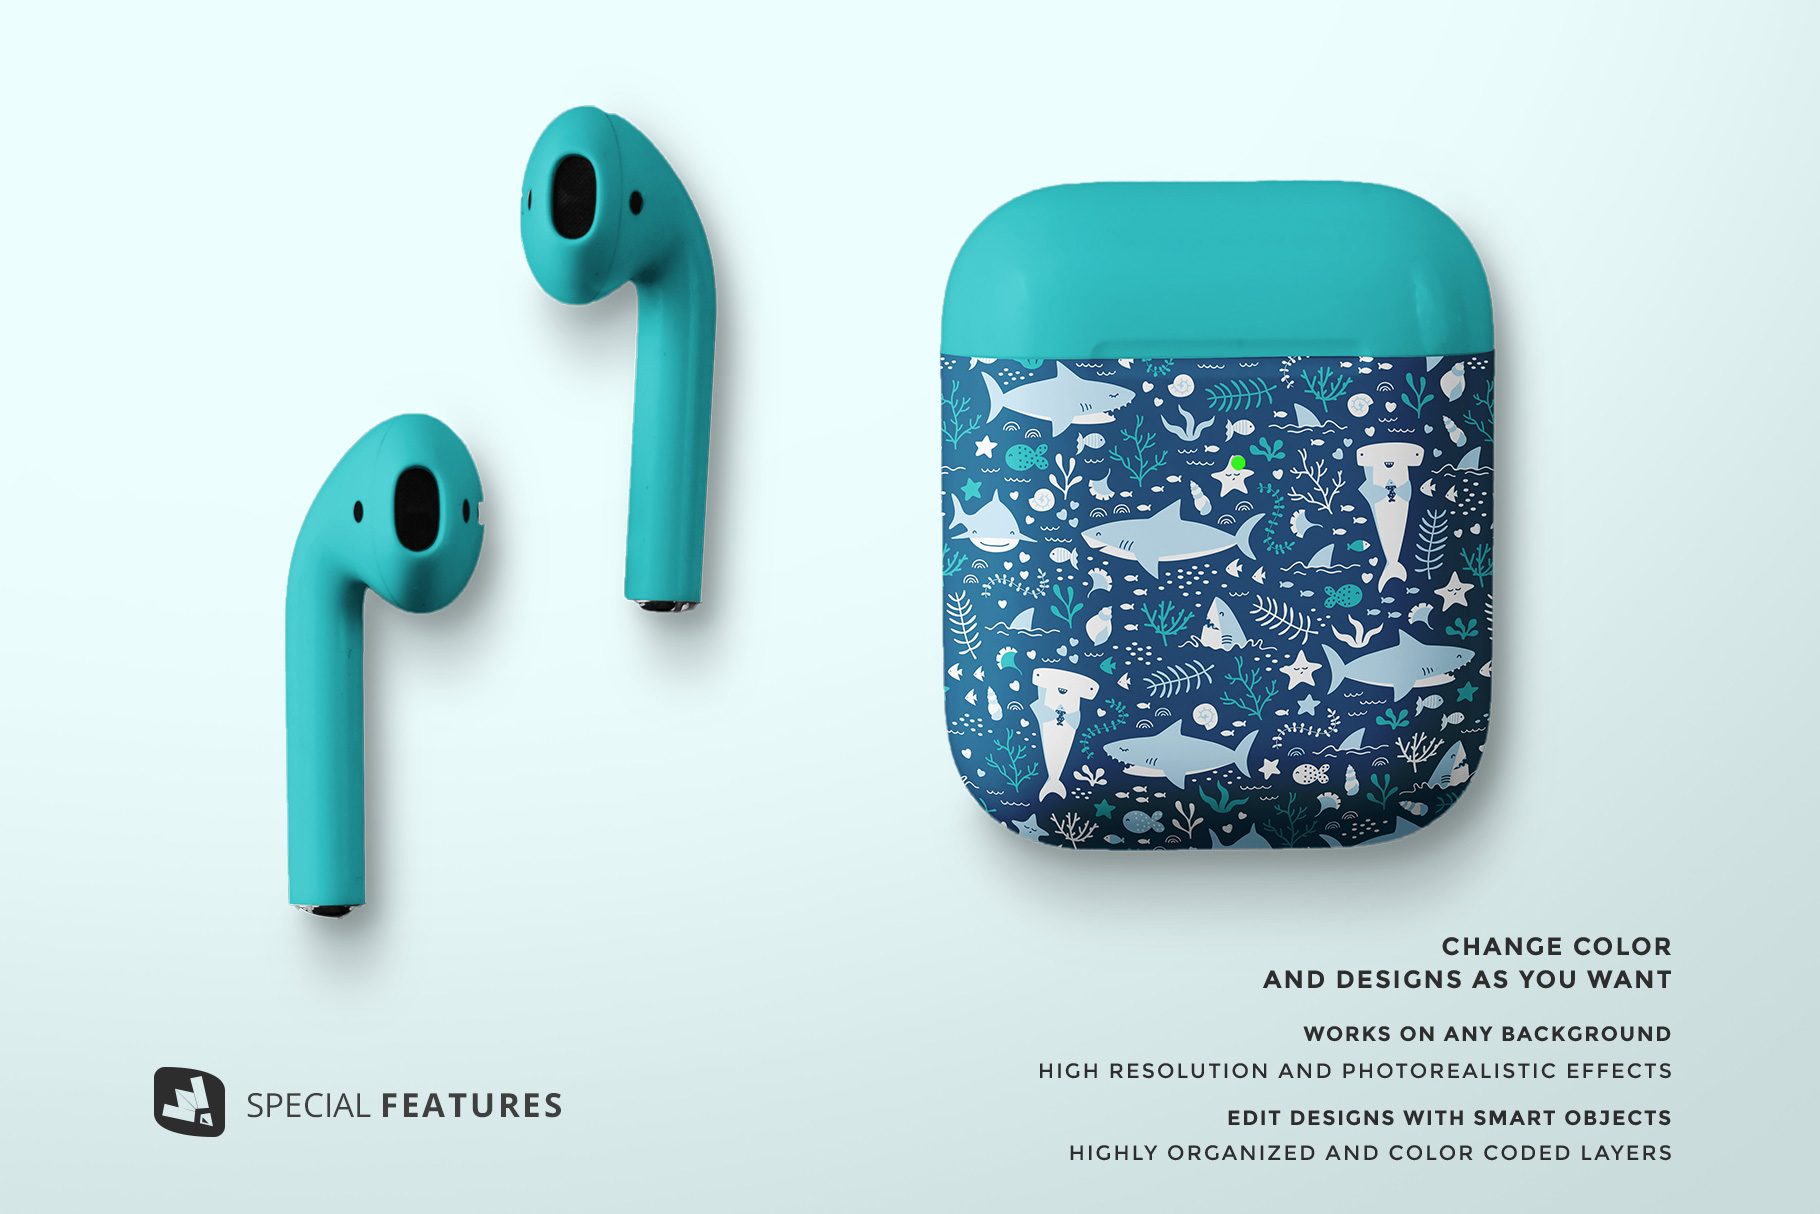 special features of the top view airpod case mockup